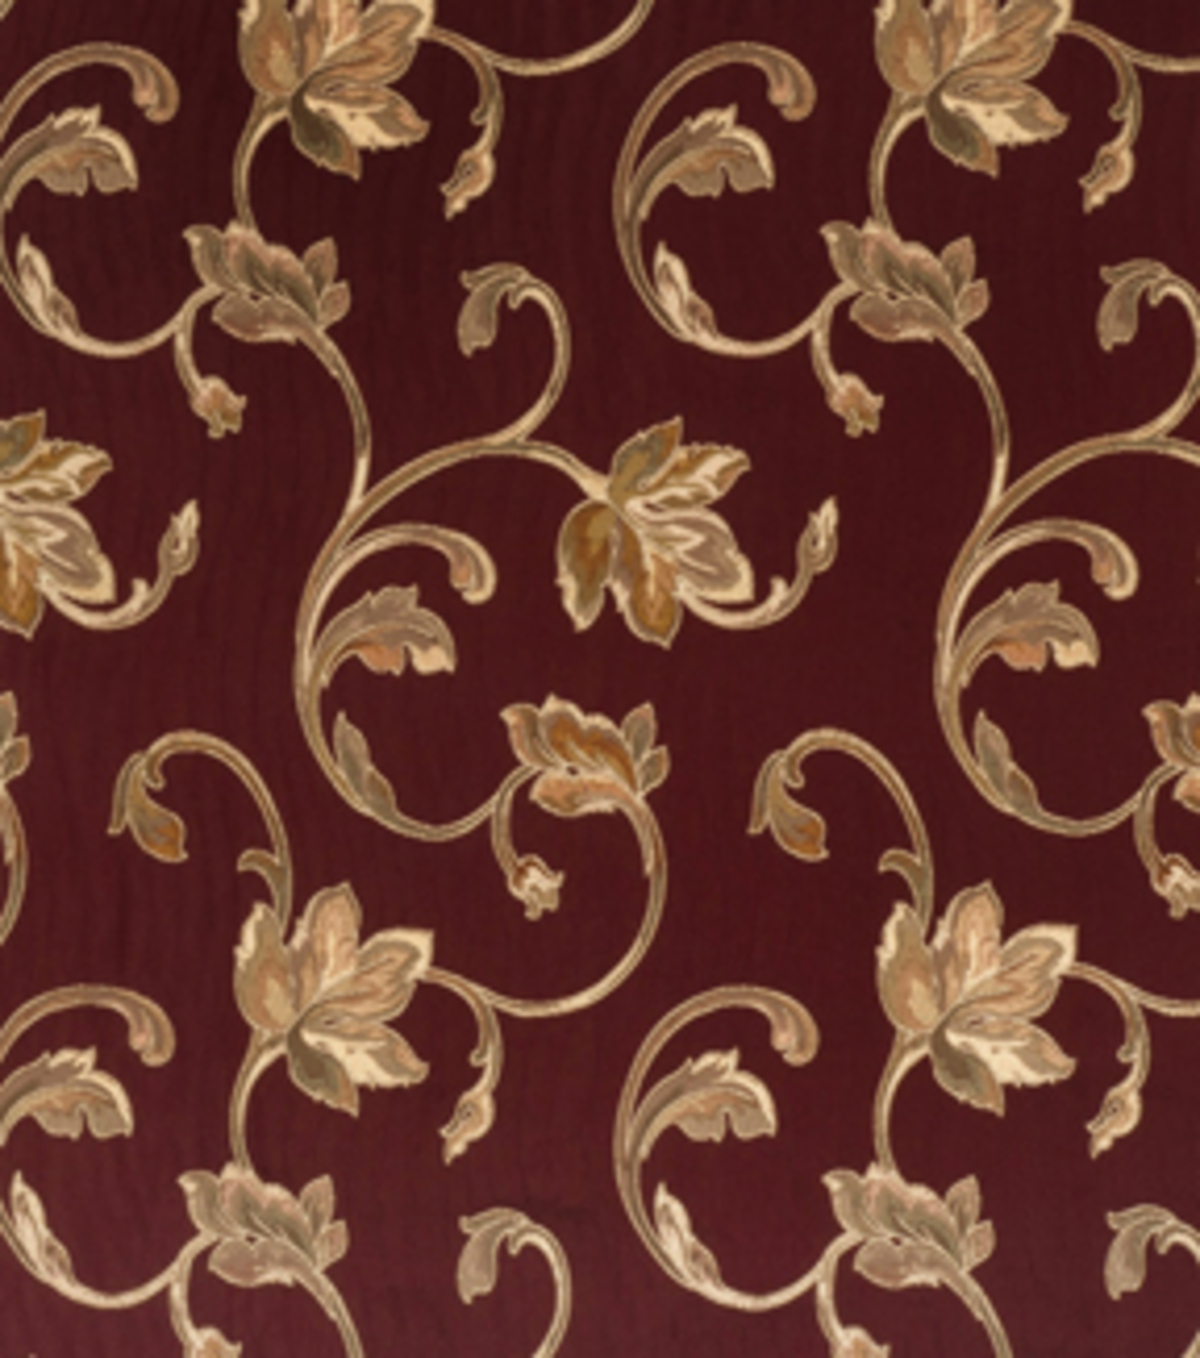 Home Decor 8\u0022x8\u0022 Fabric Swatch-Upholstery Fabric Eaton Square Carter Autumn